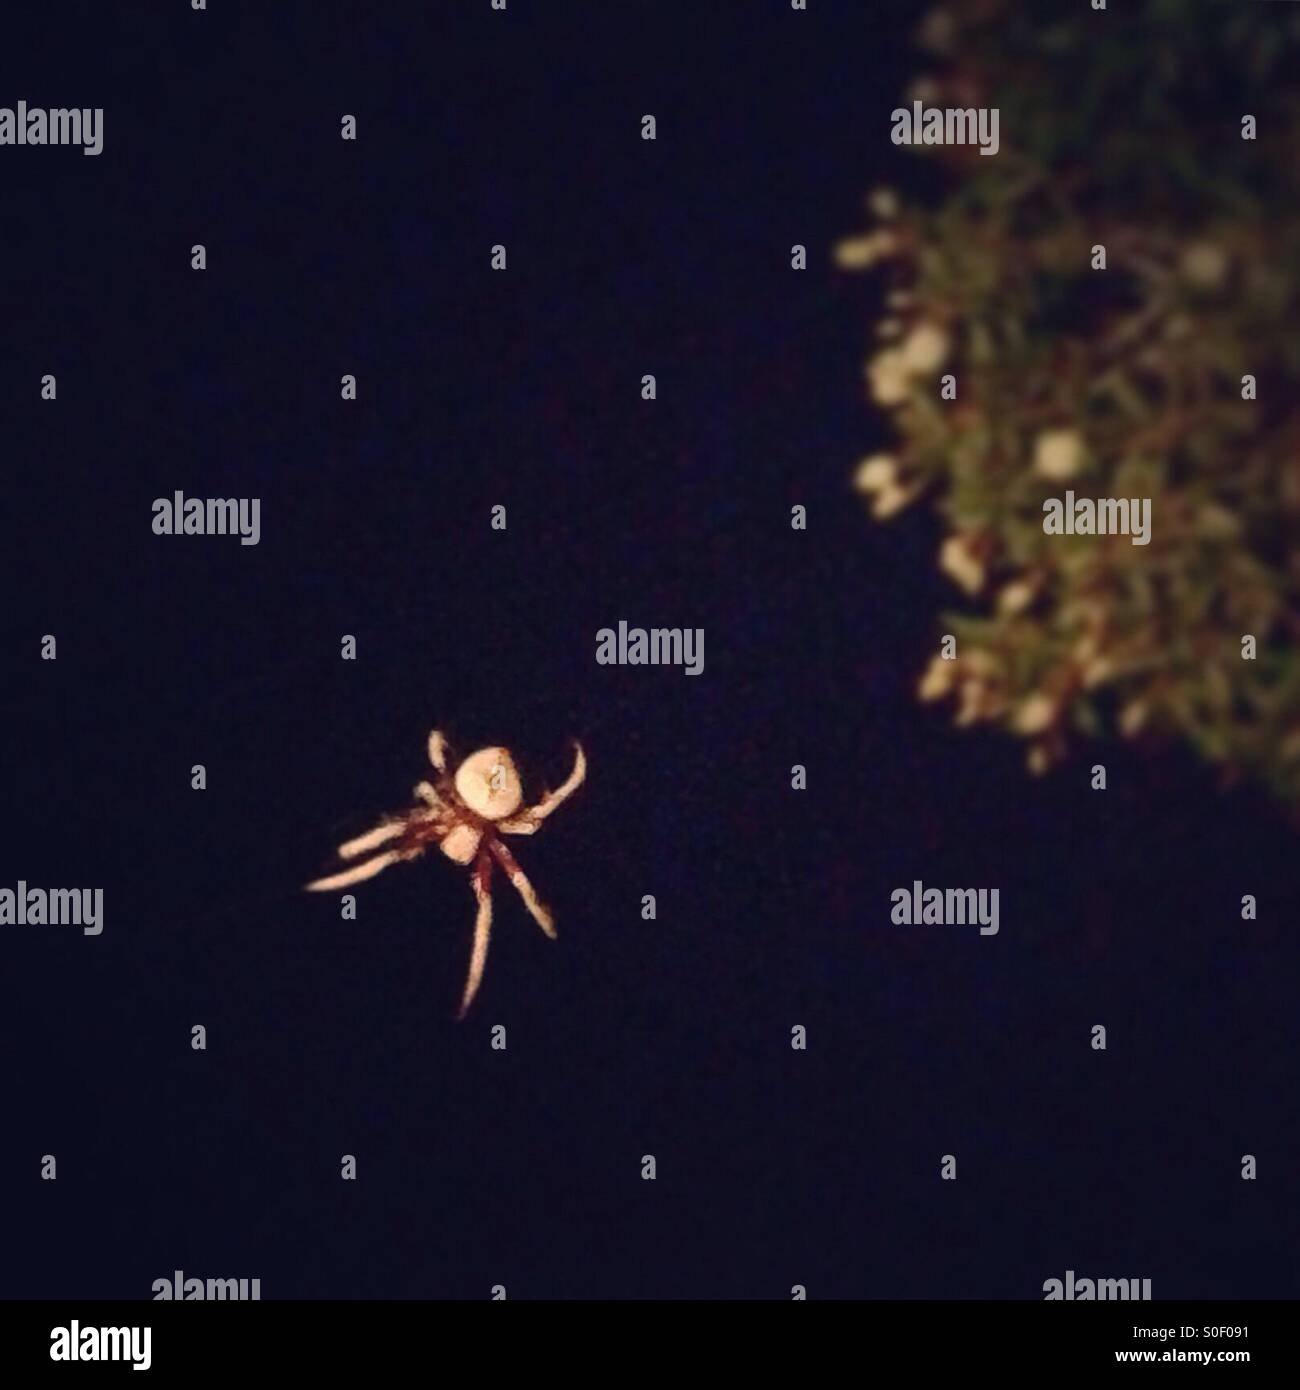 Spider In The Night - Stock Image